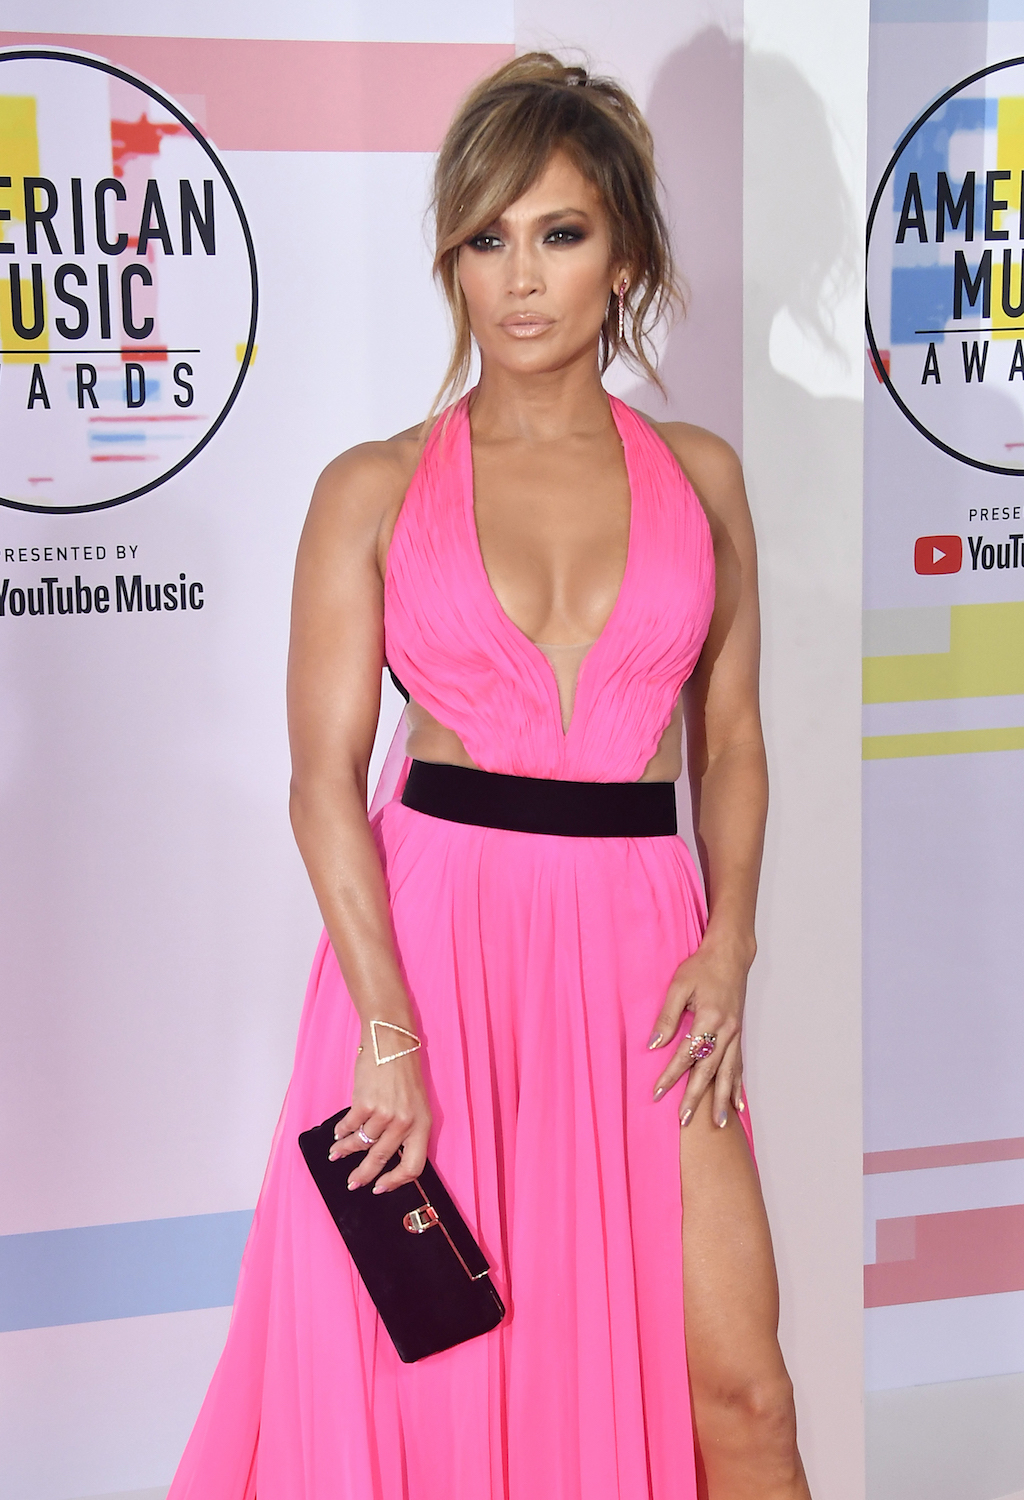 Jennifer Lopez attends the 2018 American Music Awards at Microsoft Theater on October 9, 2018 in Los Angeles, California.